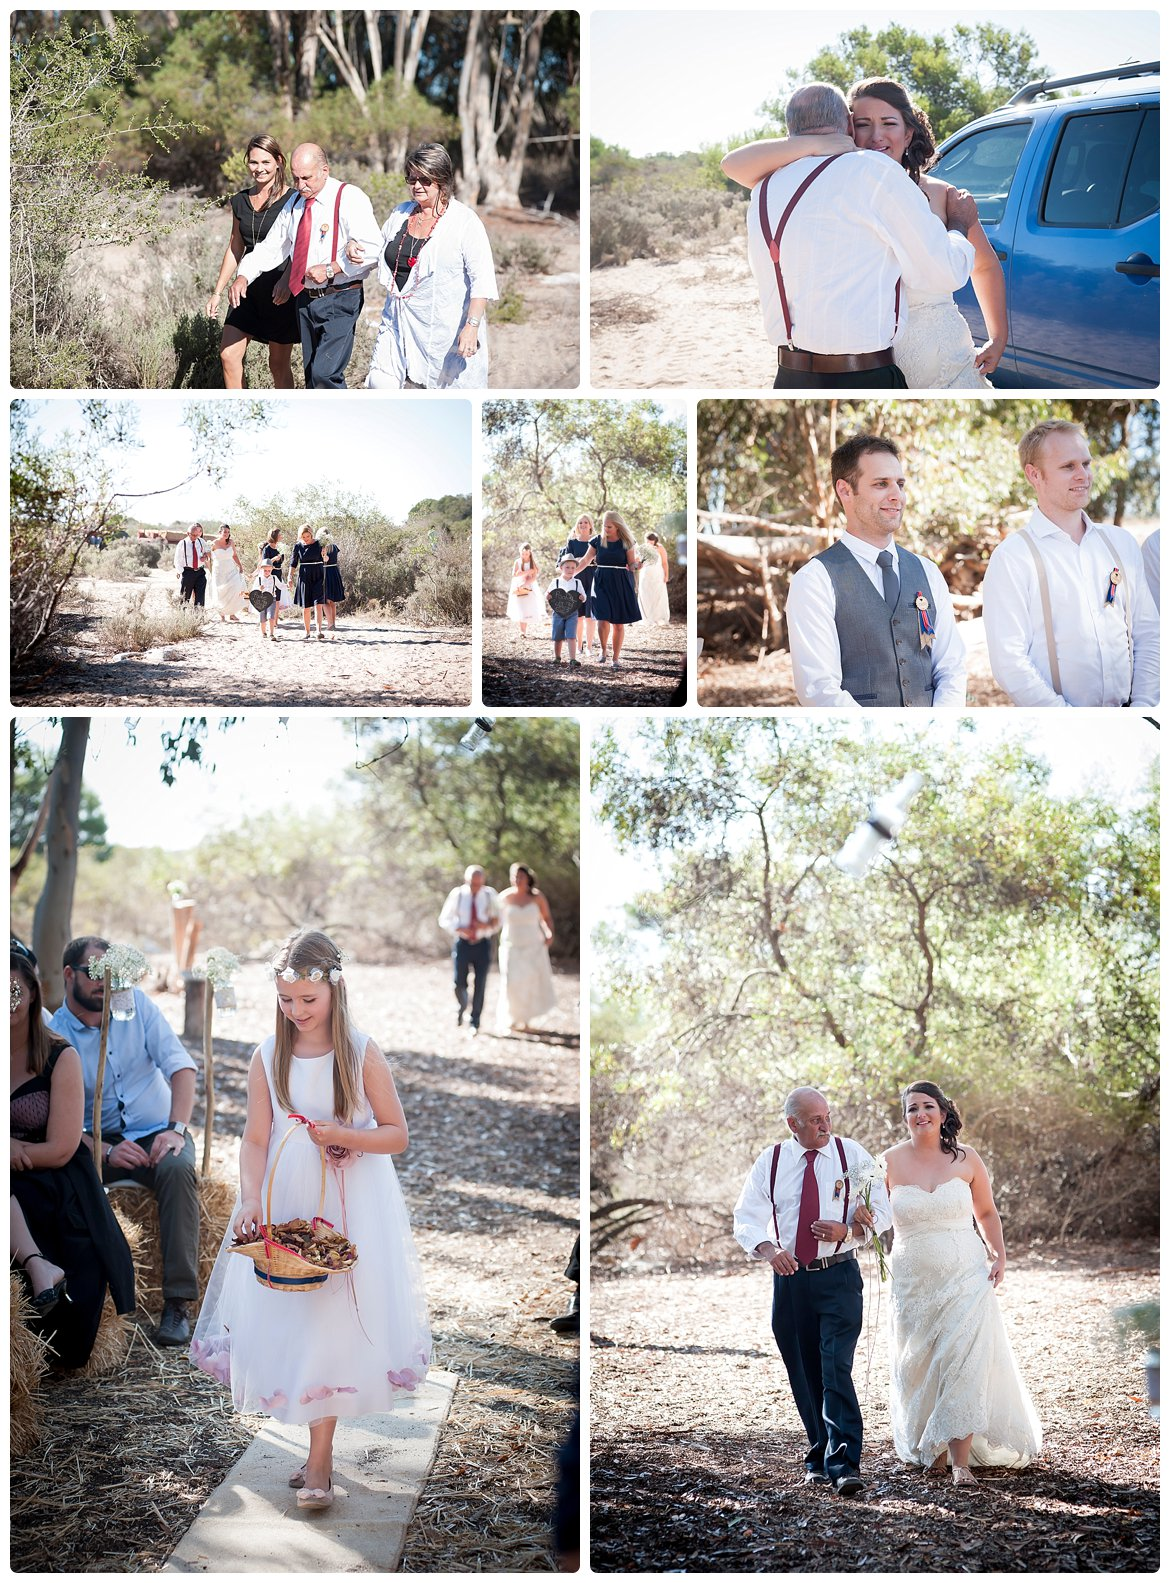 cape-town-wedding-photographer-schaftplaas-langebaan-0013